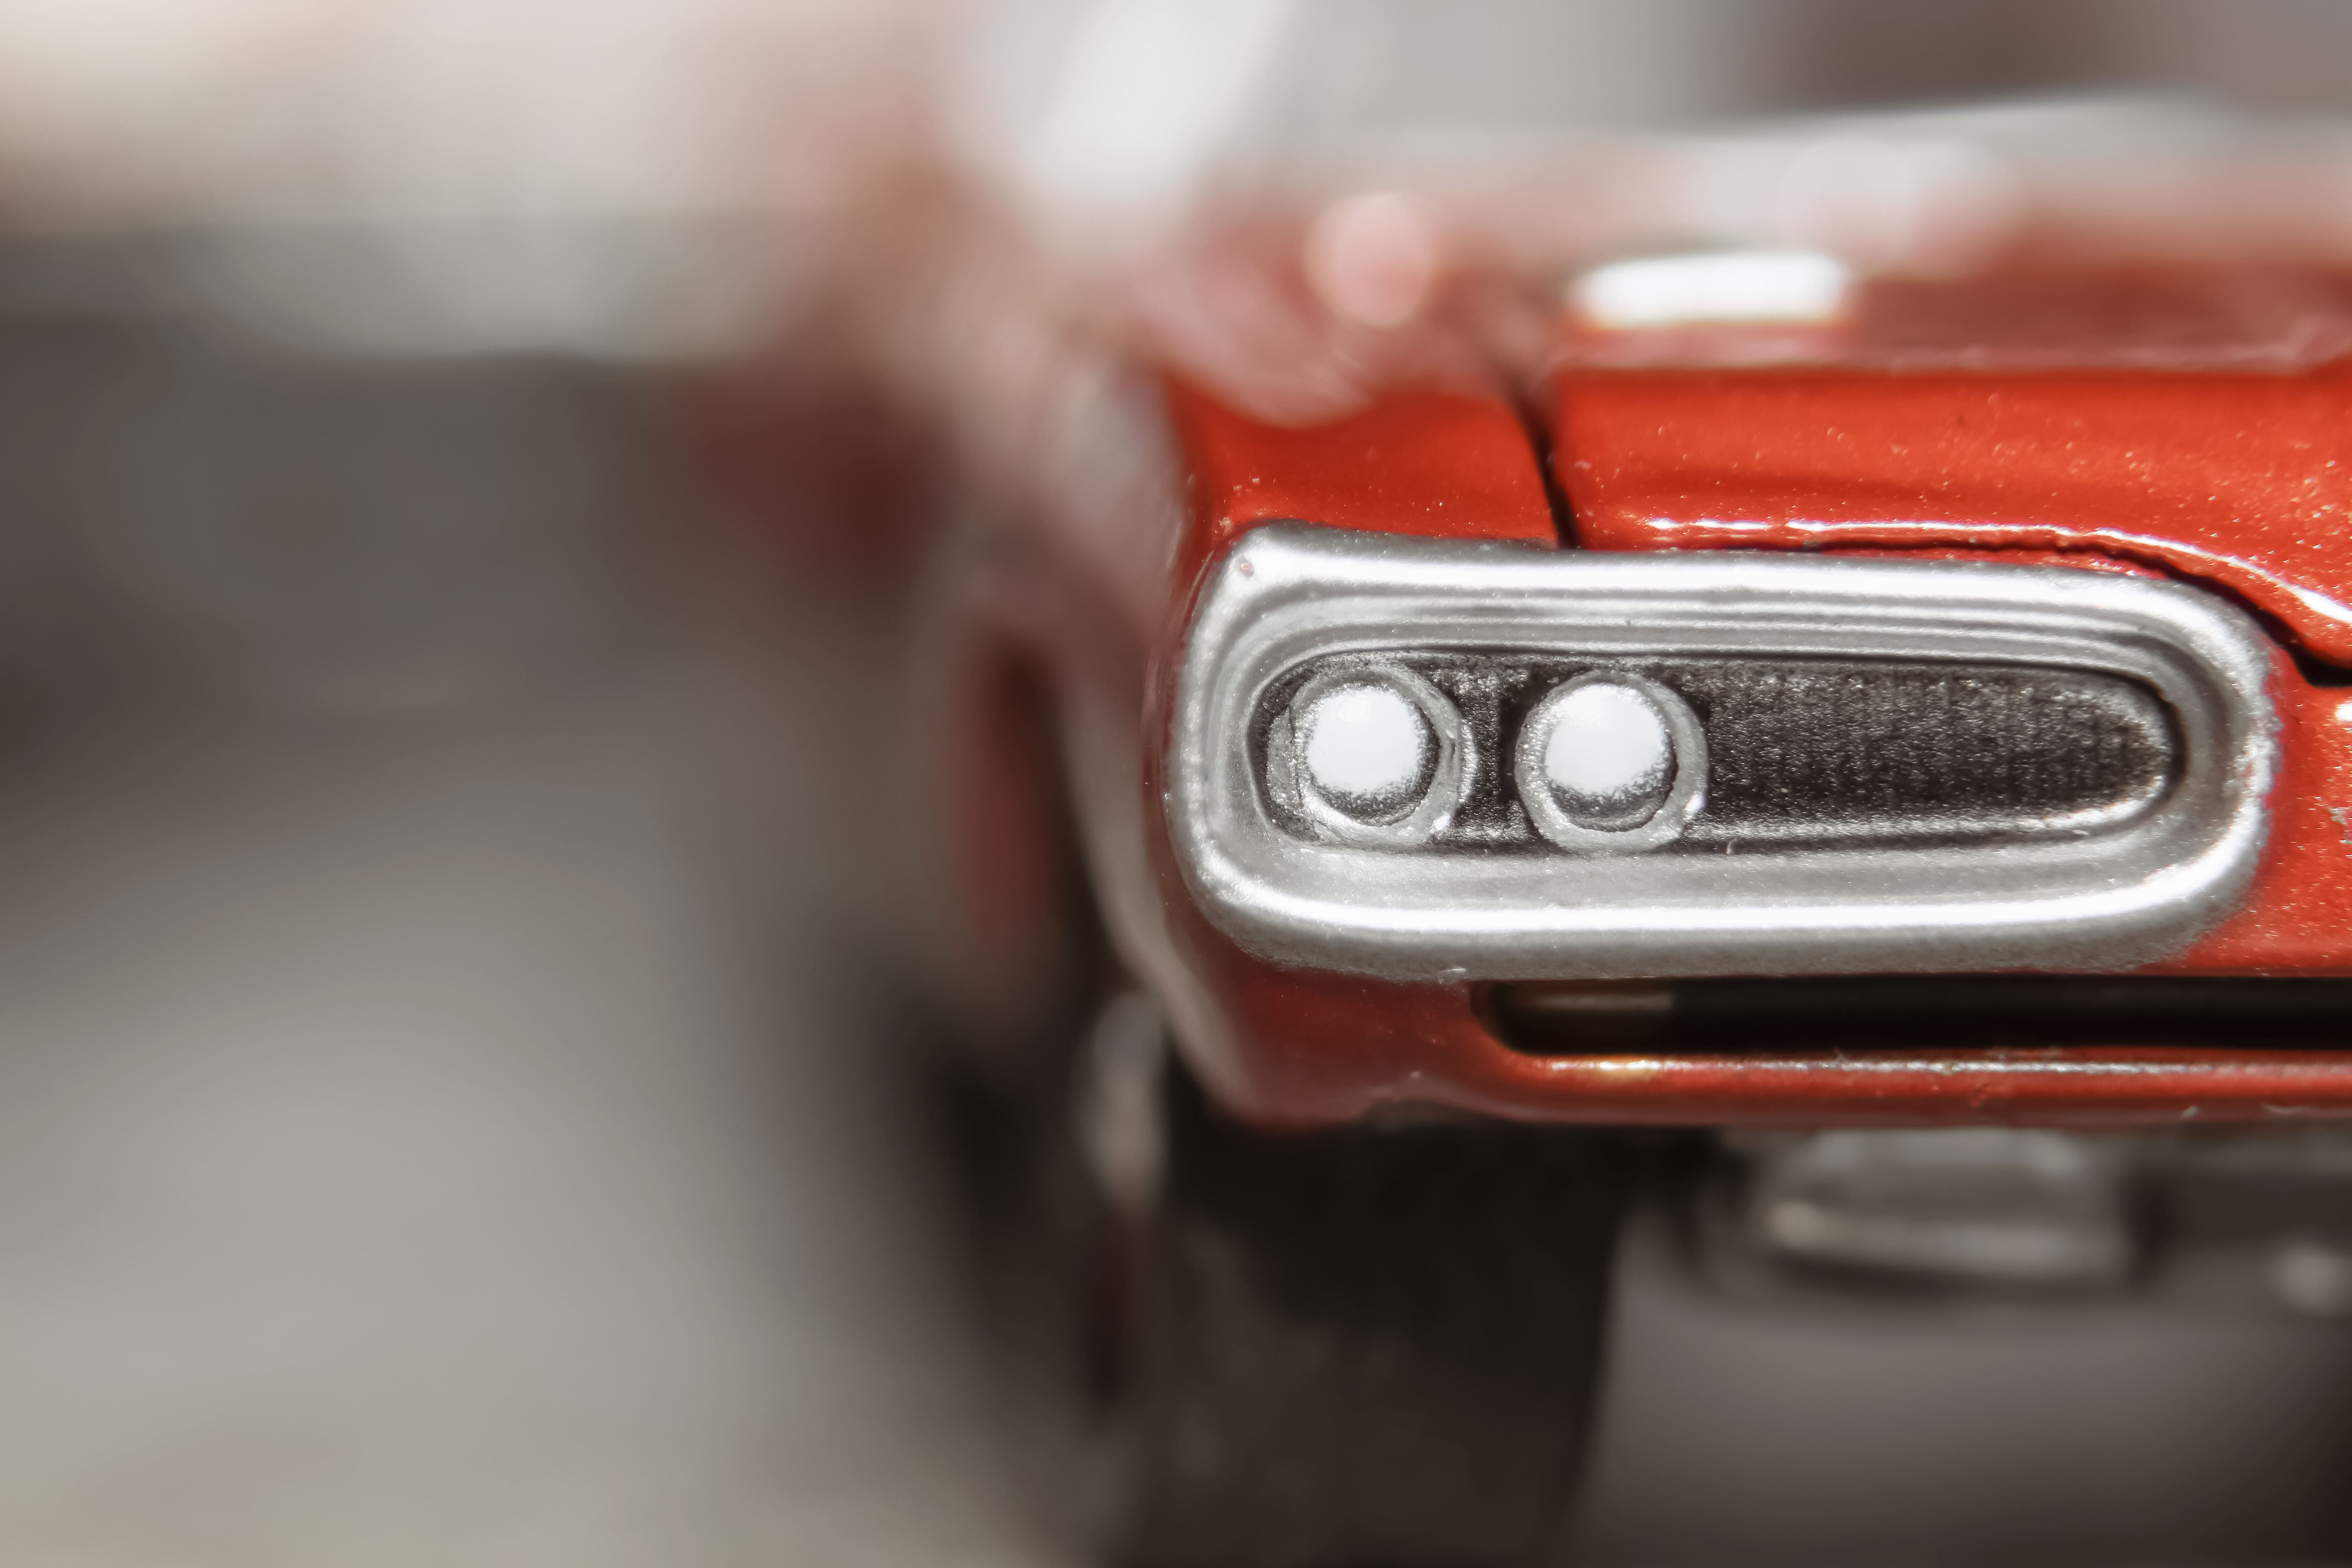 BlogPost 48337992828 Discover the Five Everyday Things That are Die-Cast and Win That Trivia